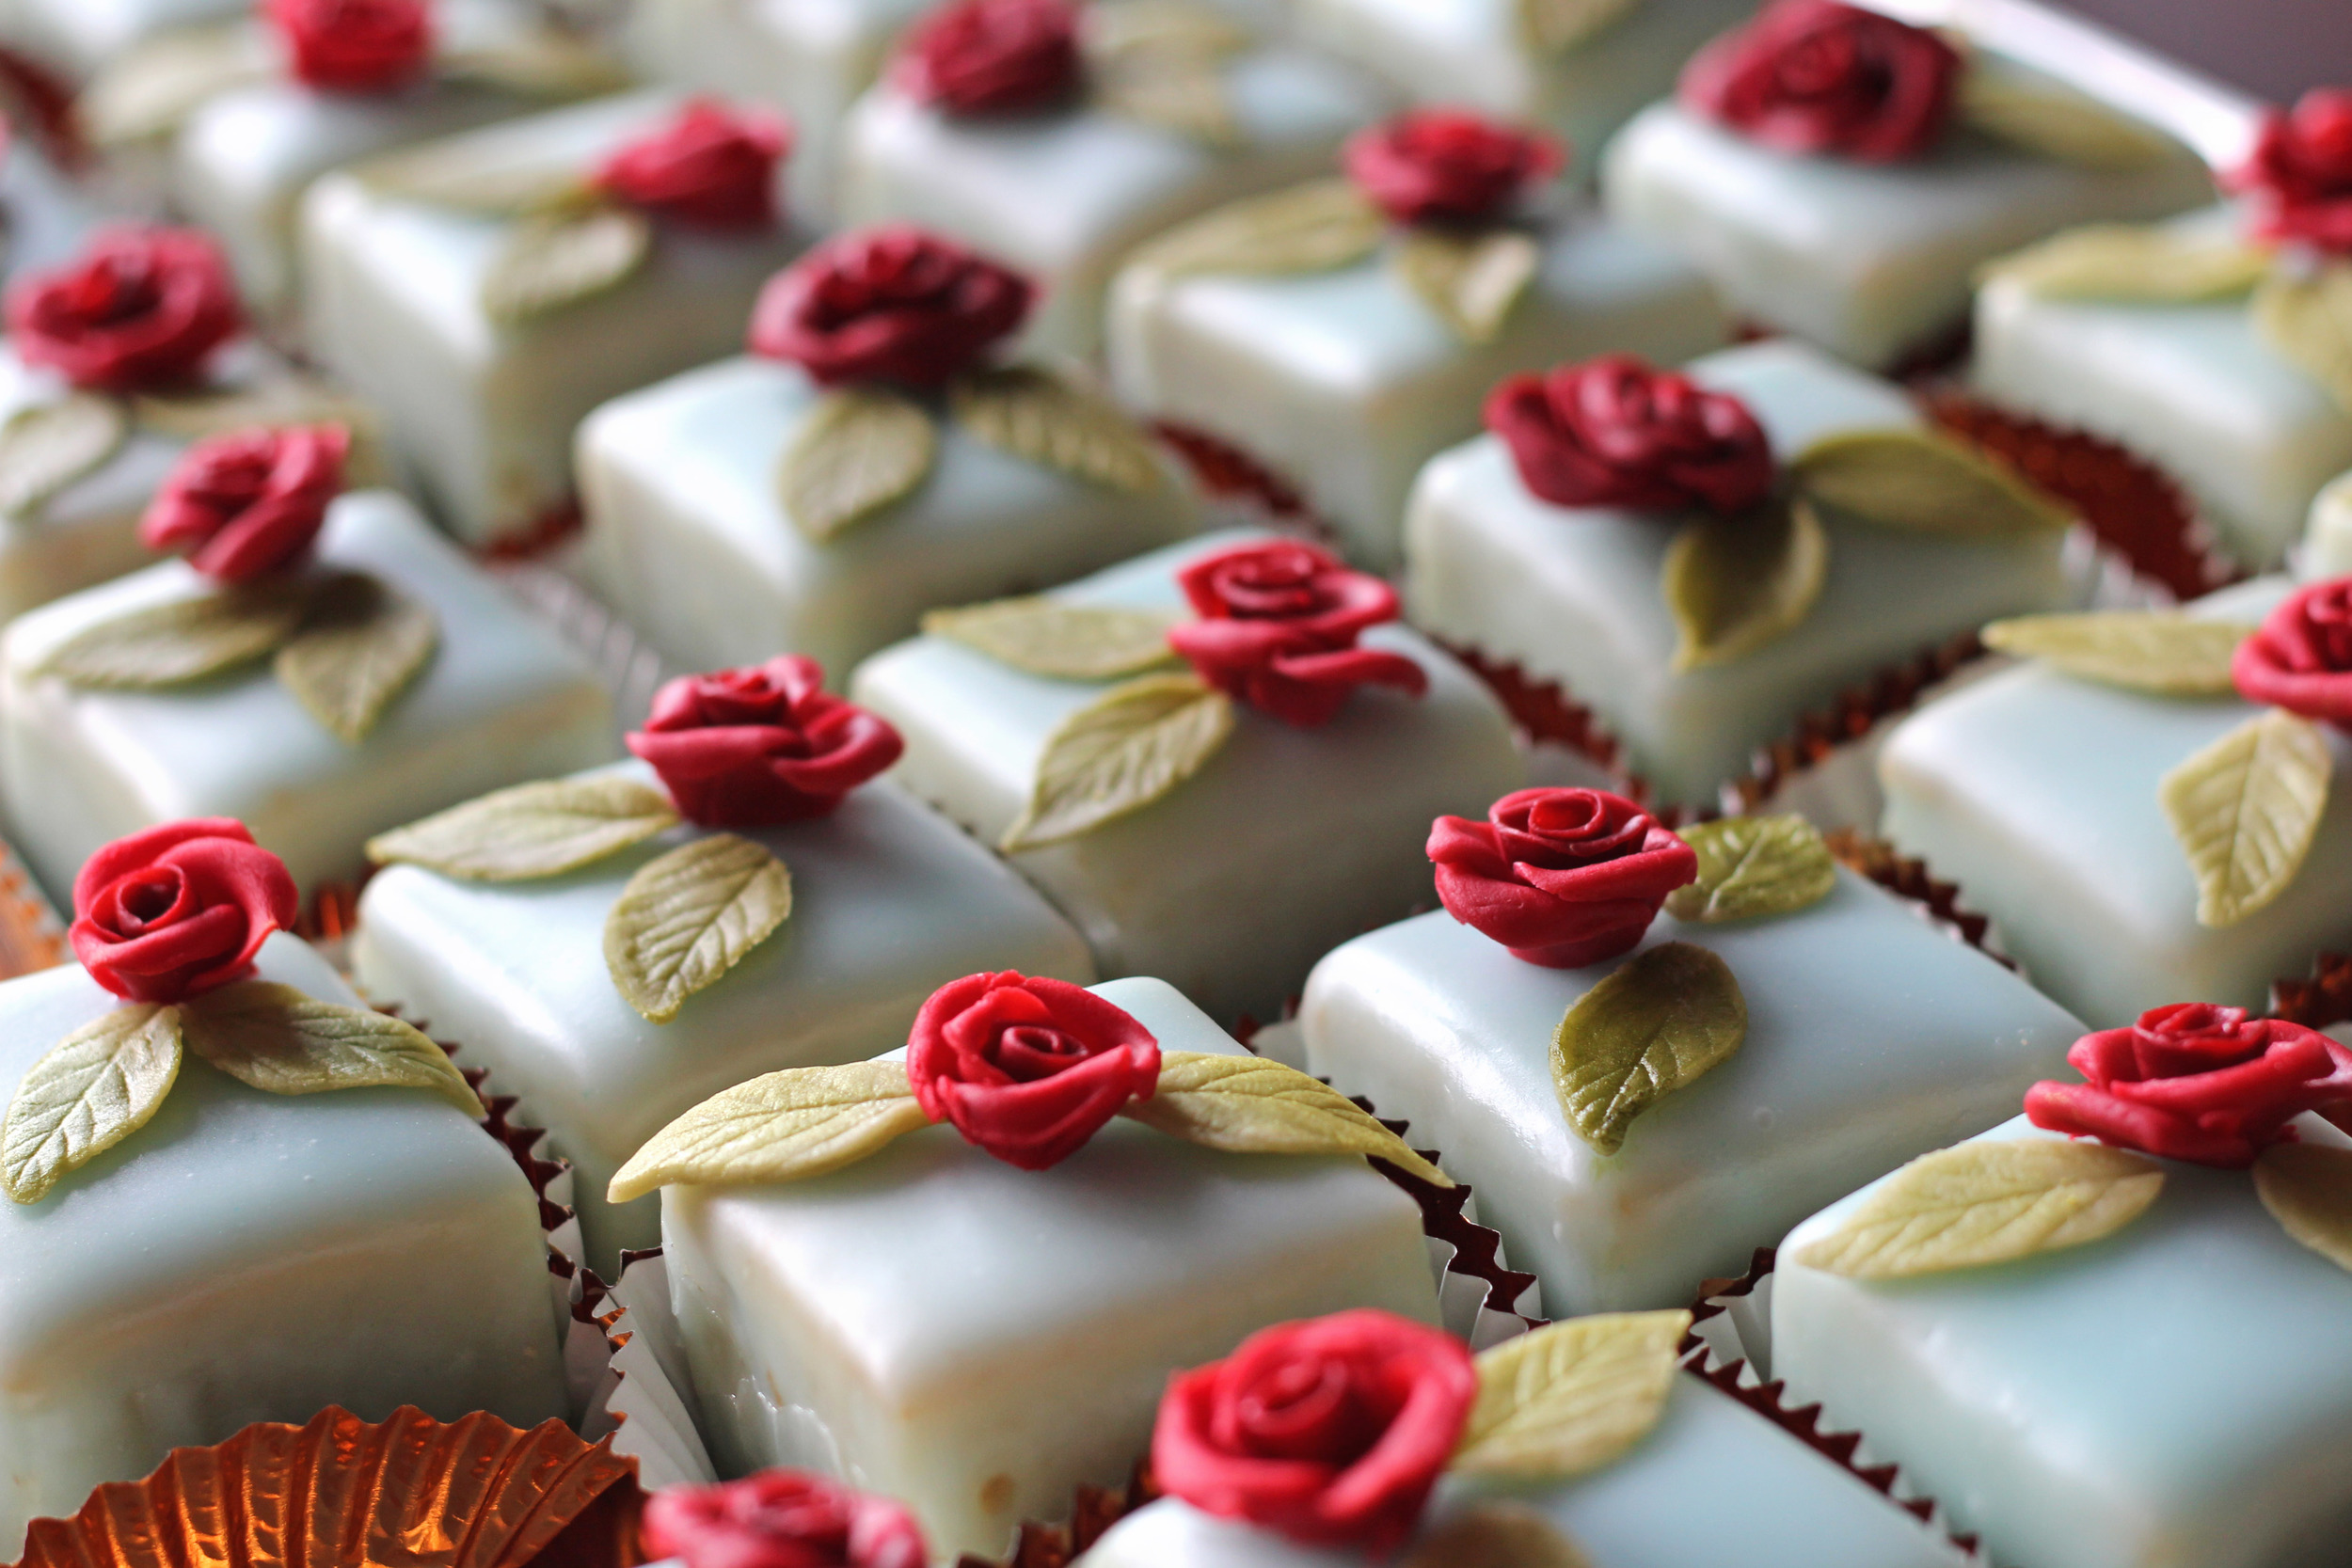 Petit cakes with miniature rose designs